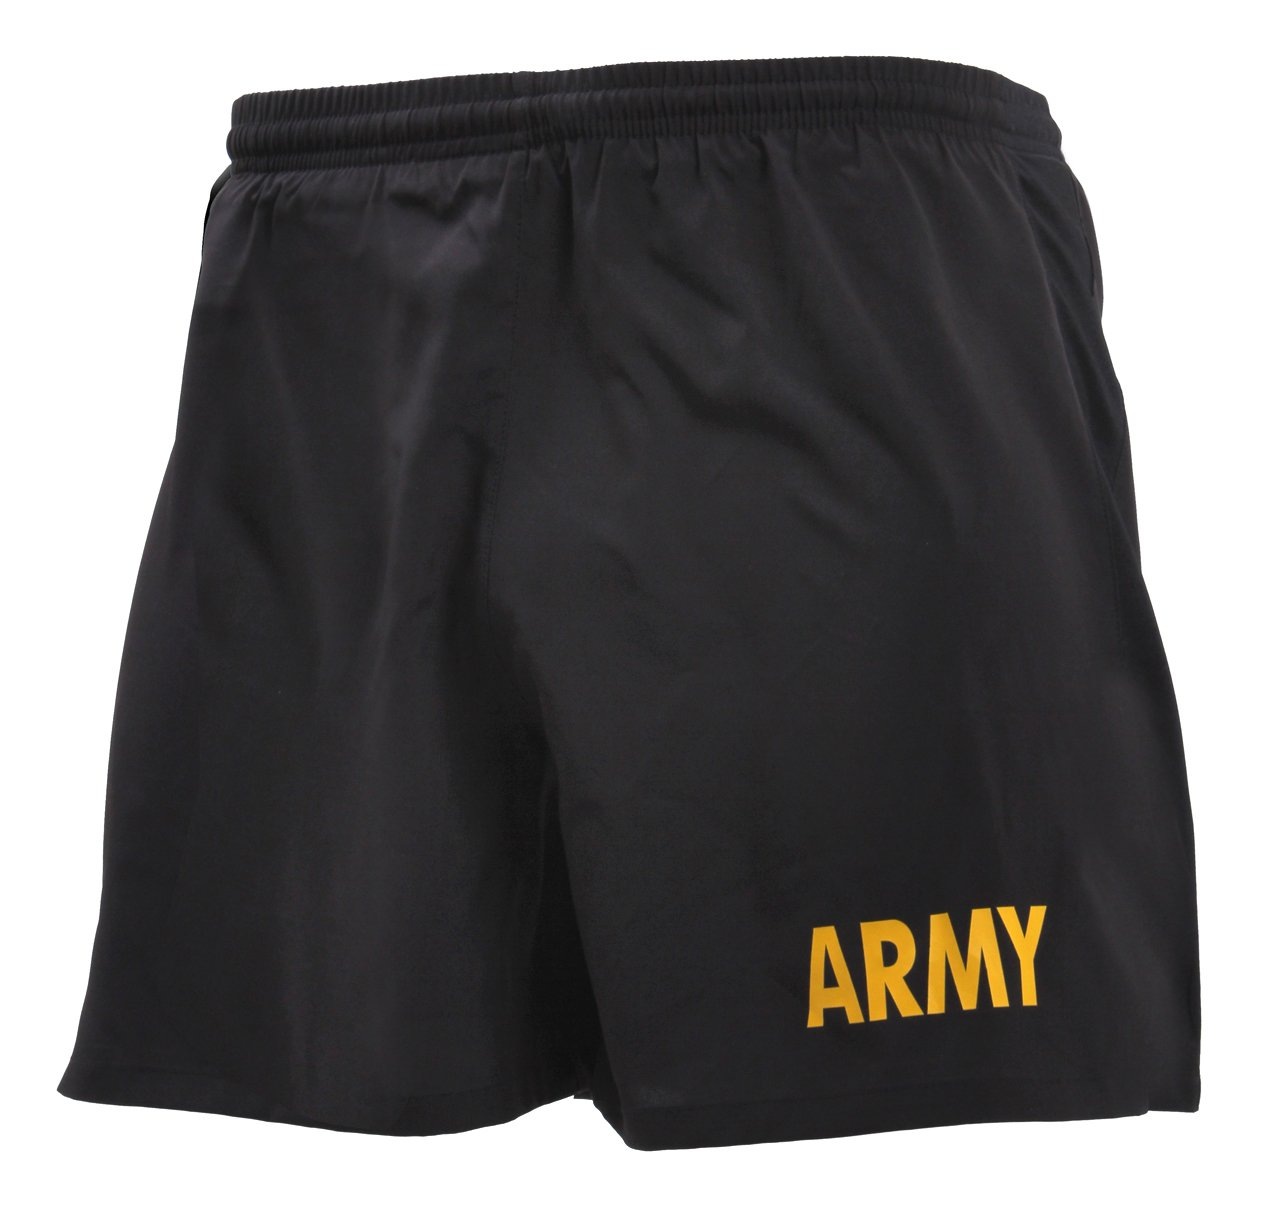 Rothco Army Physical Training Shorts, S Black/Gold by Rothco